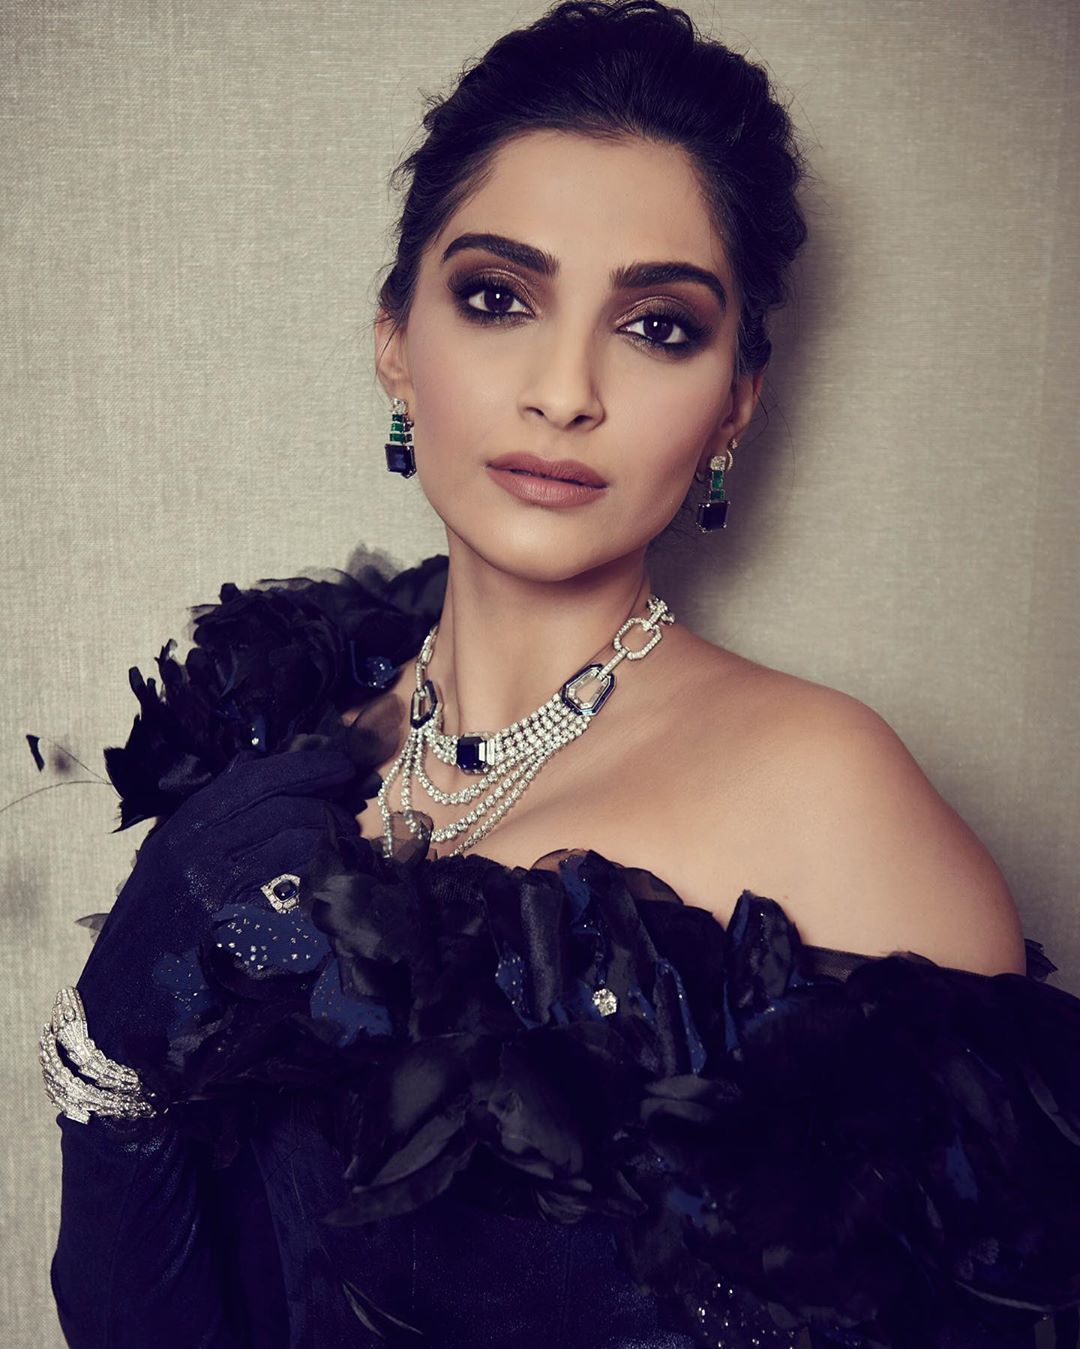 Sonam Kapoor's Latest Look is An Ode To The 60s